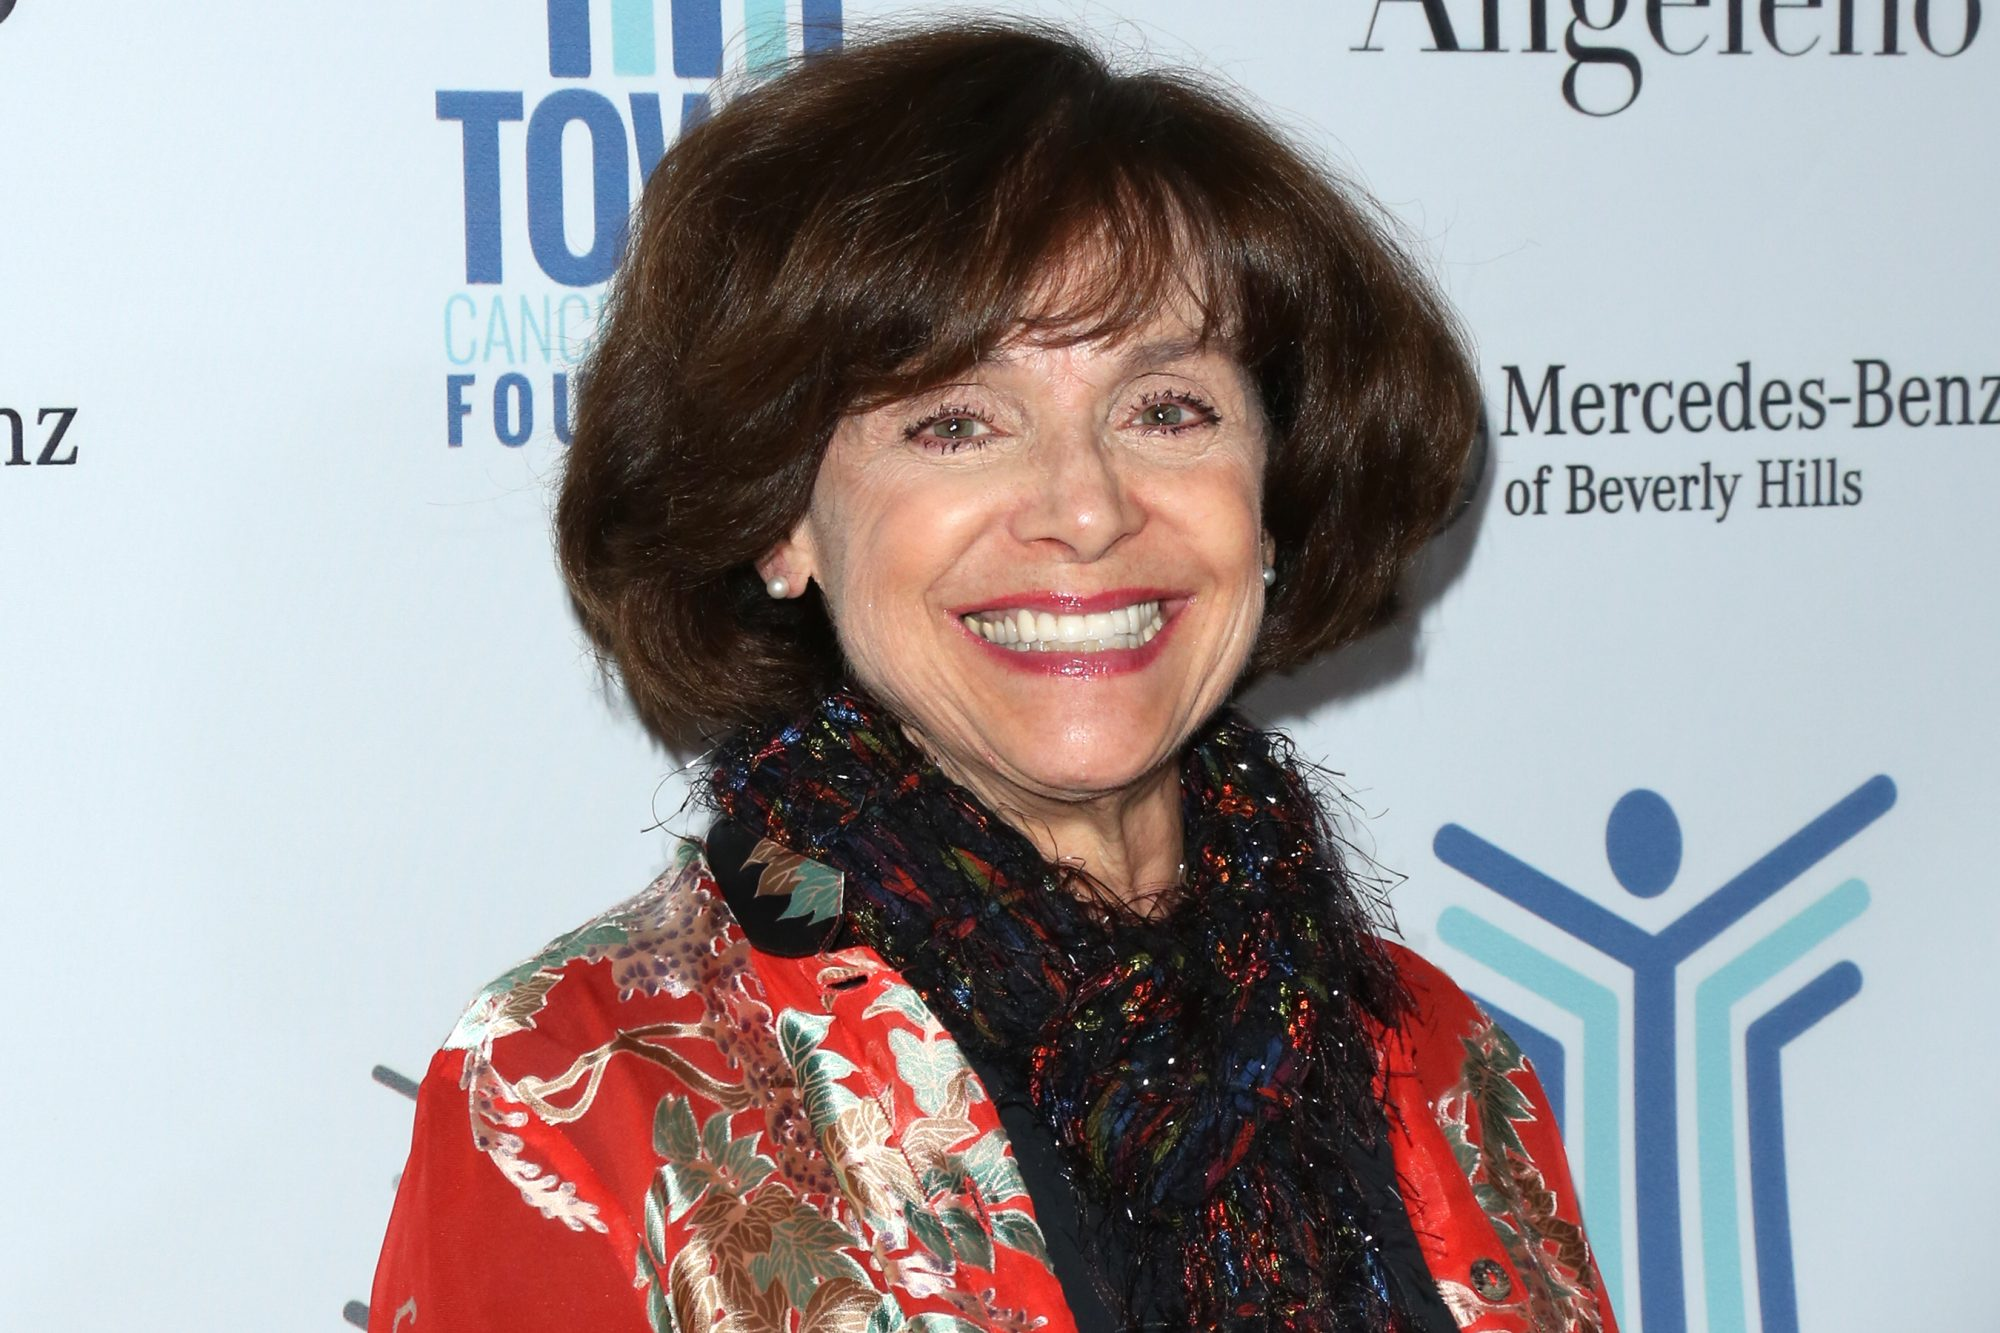 Valerie Harper, 'Rhoda' and 'Mary Tyler Moore Show' star, dies at 80